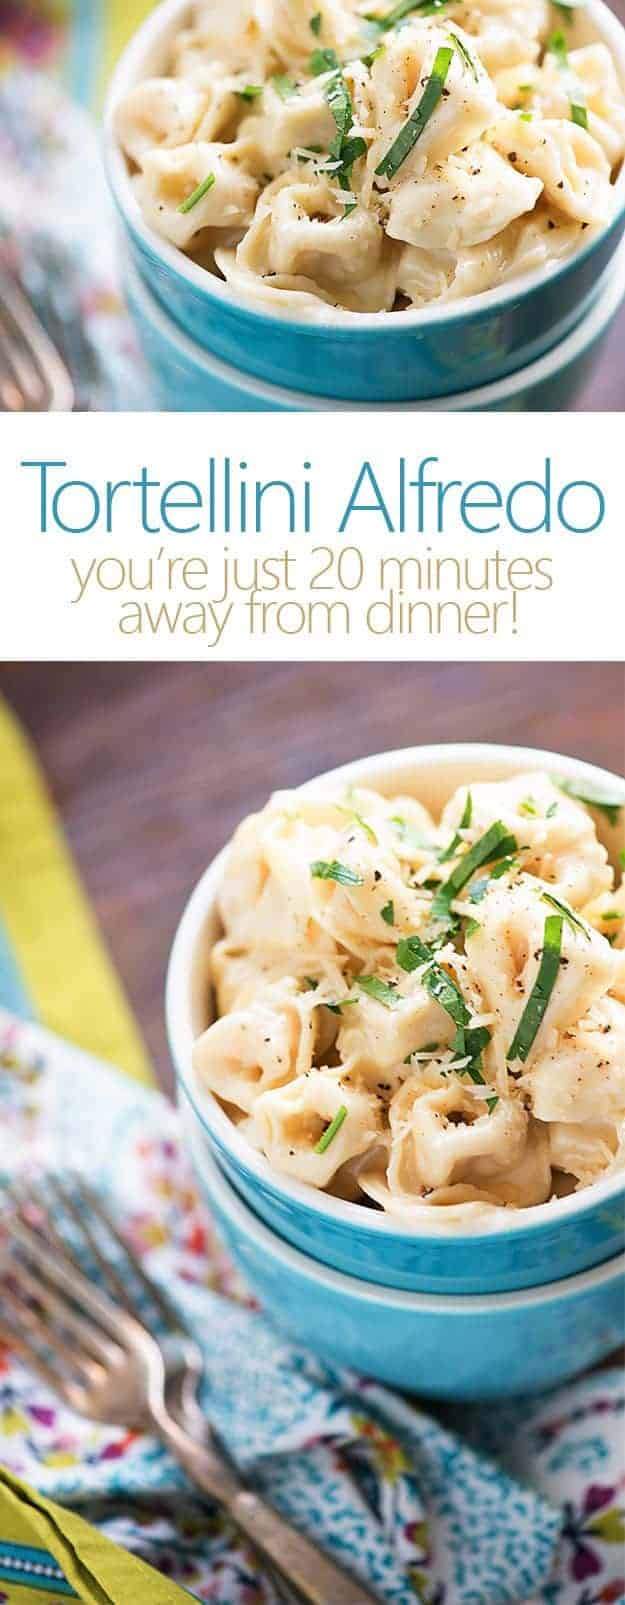 Just 20 minutes to make this tortellini Alfredo!